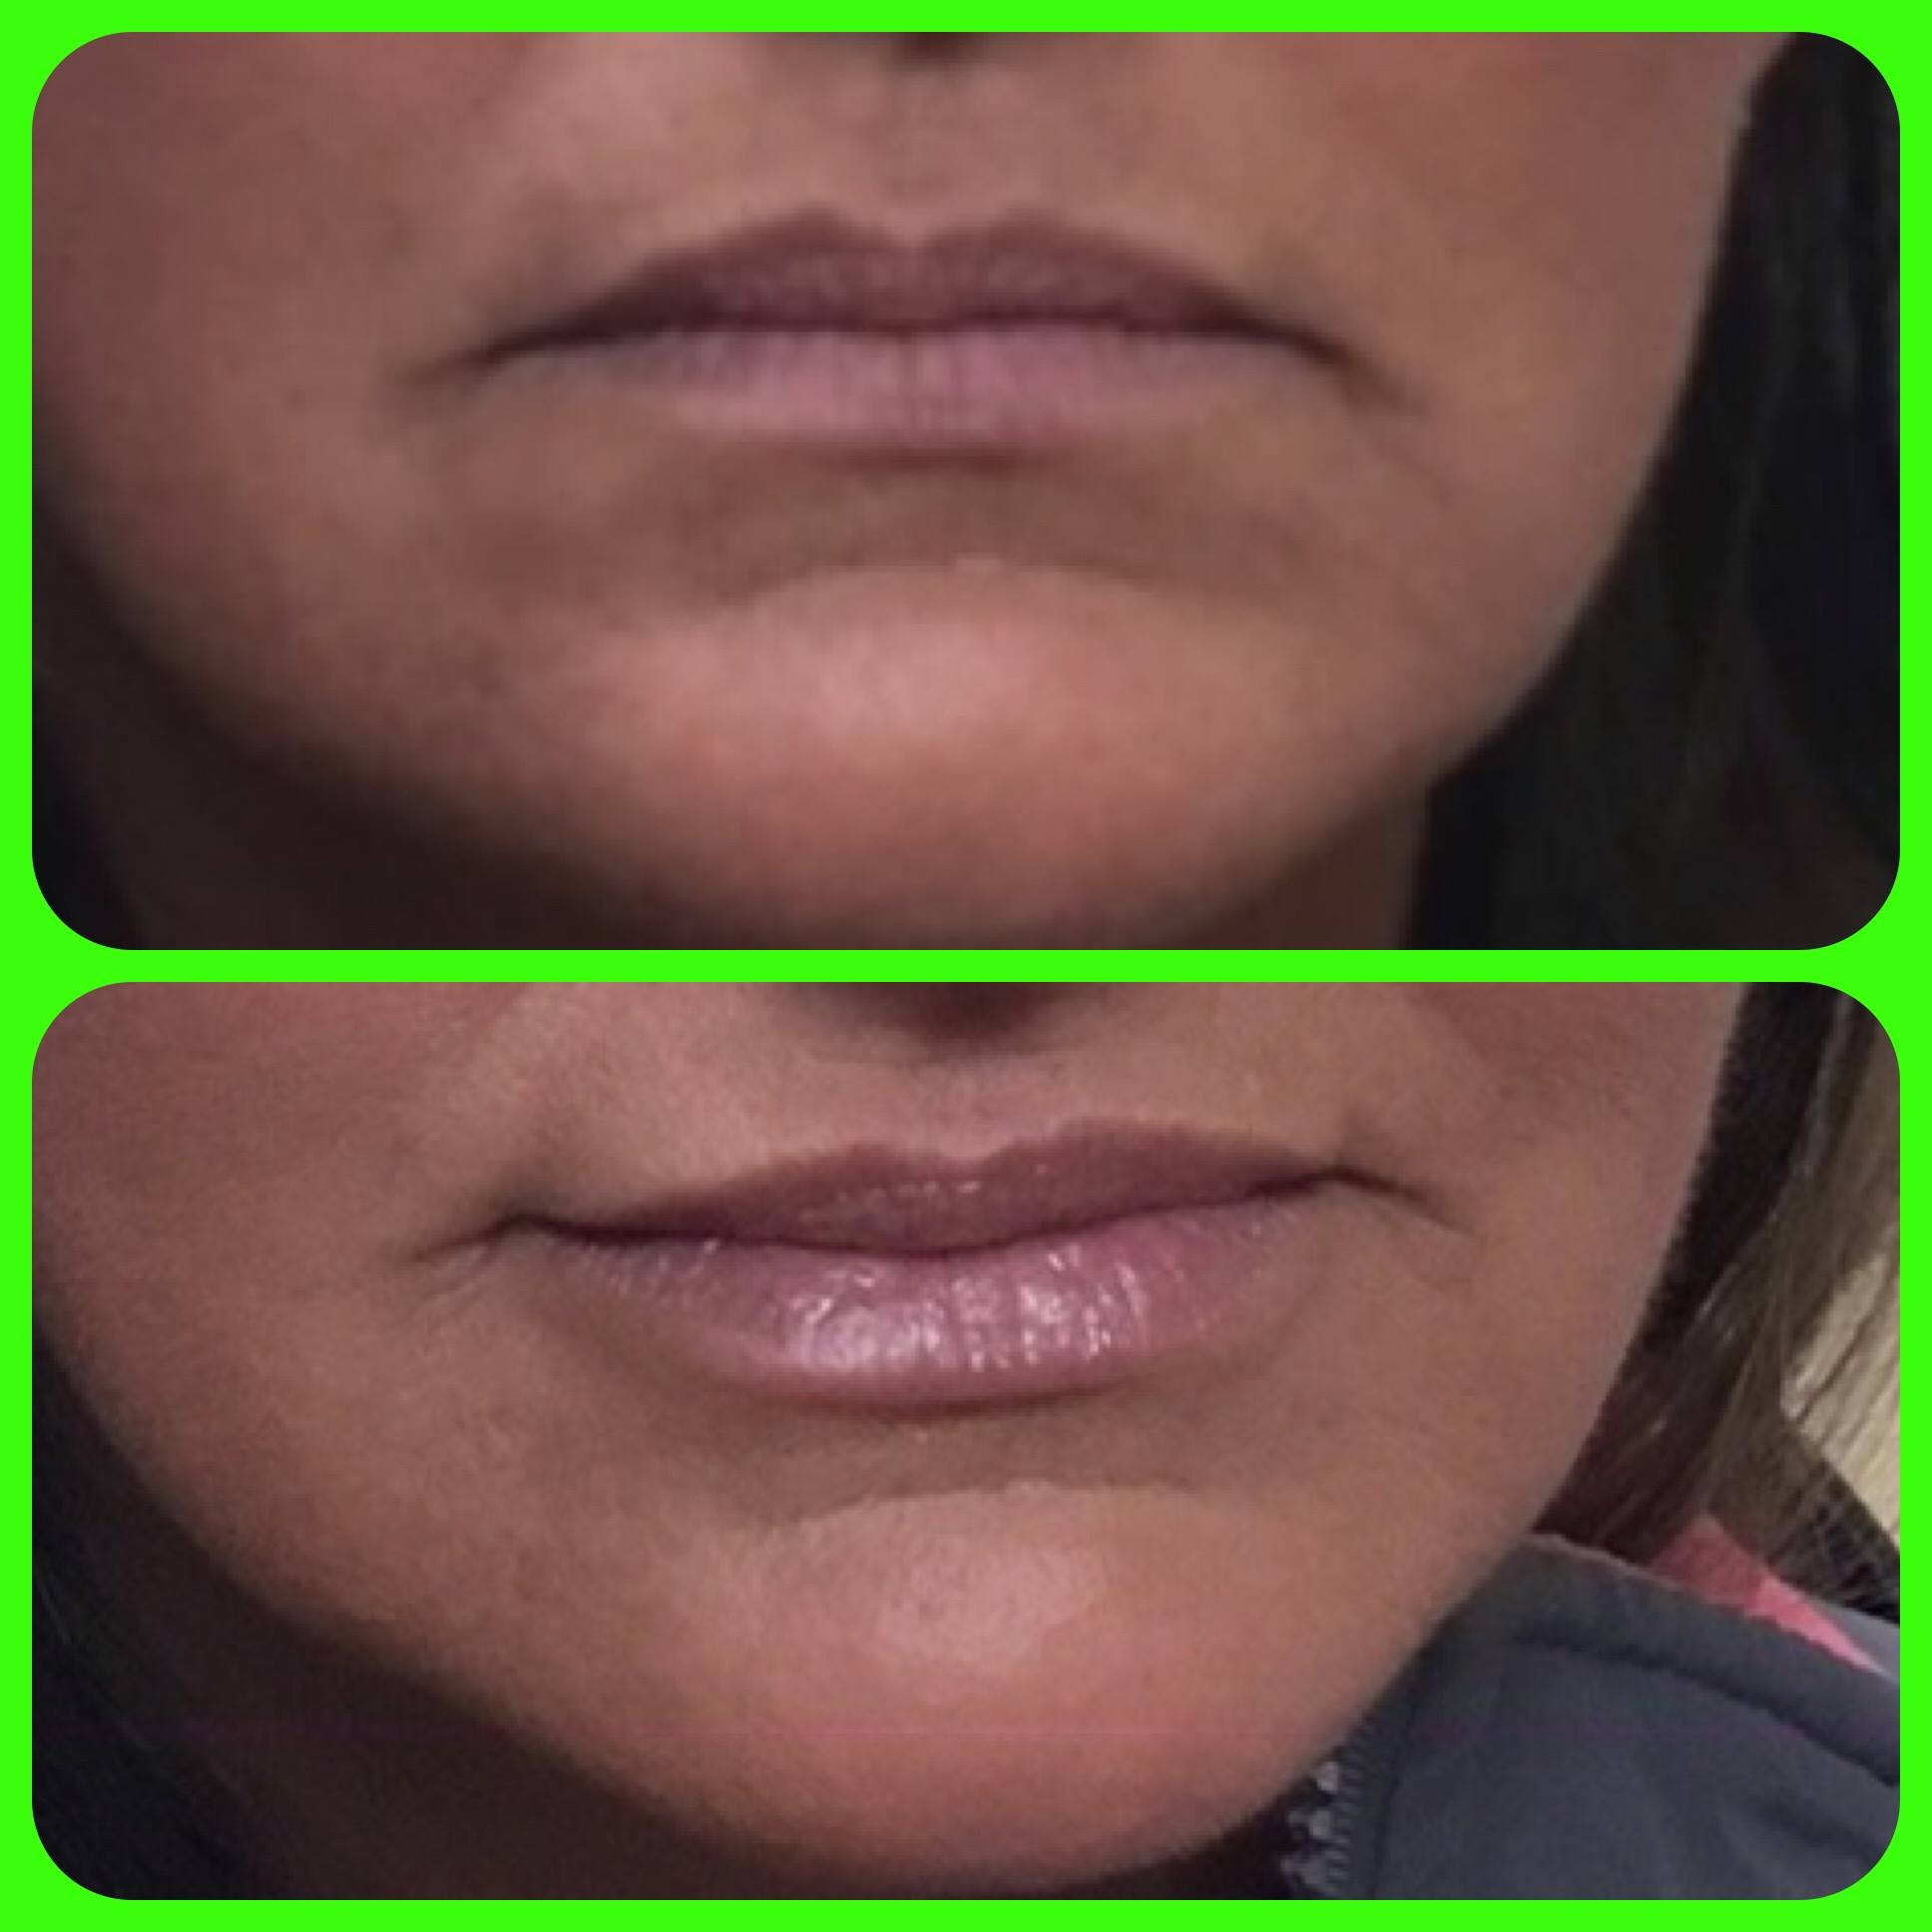 Juvederm lip filler before and after